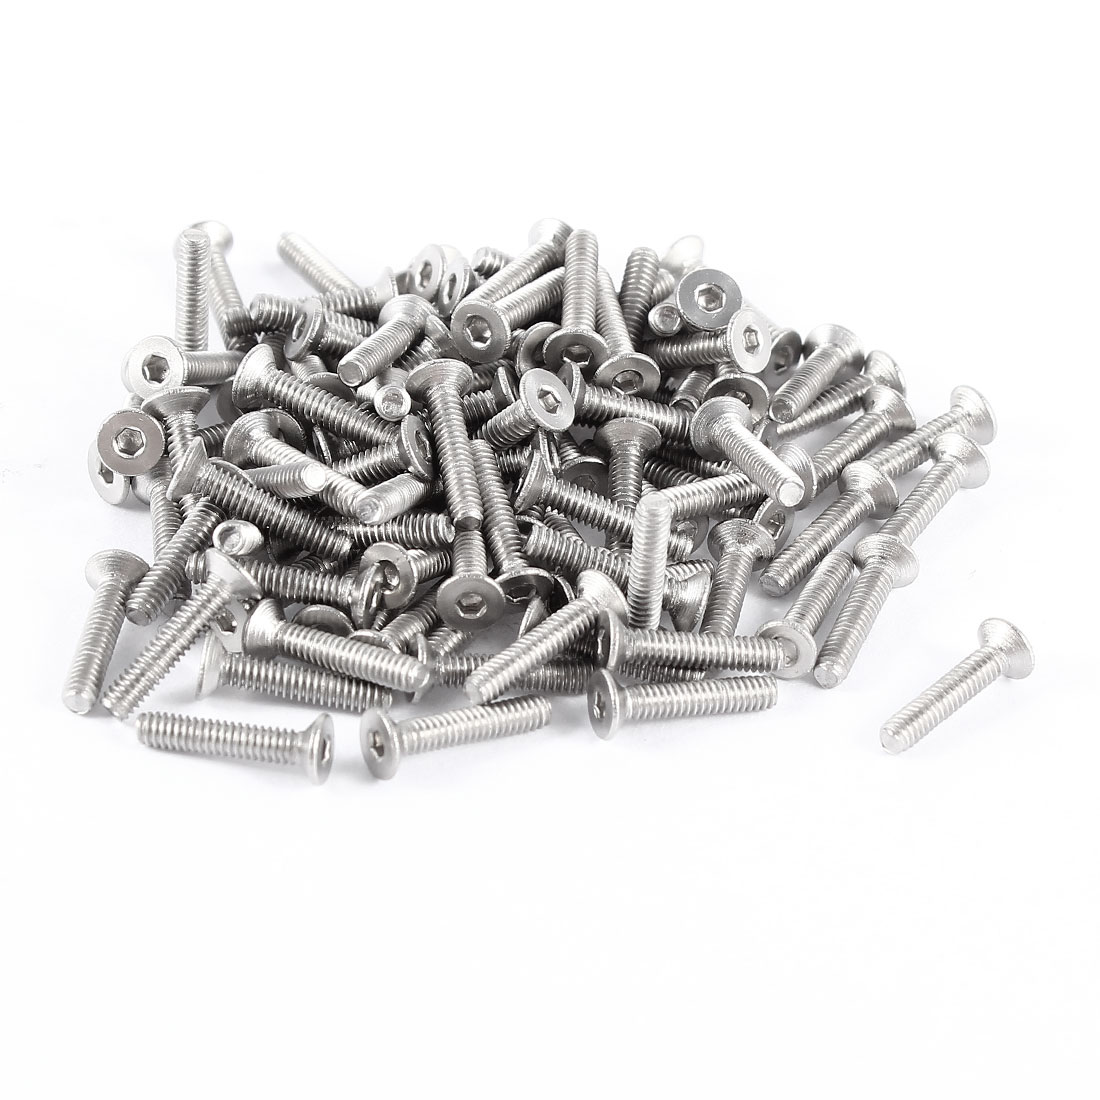 100 Pieces 304HC Stainless Steel Countersunk Flat Head Bolts M2.5x10mm